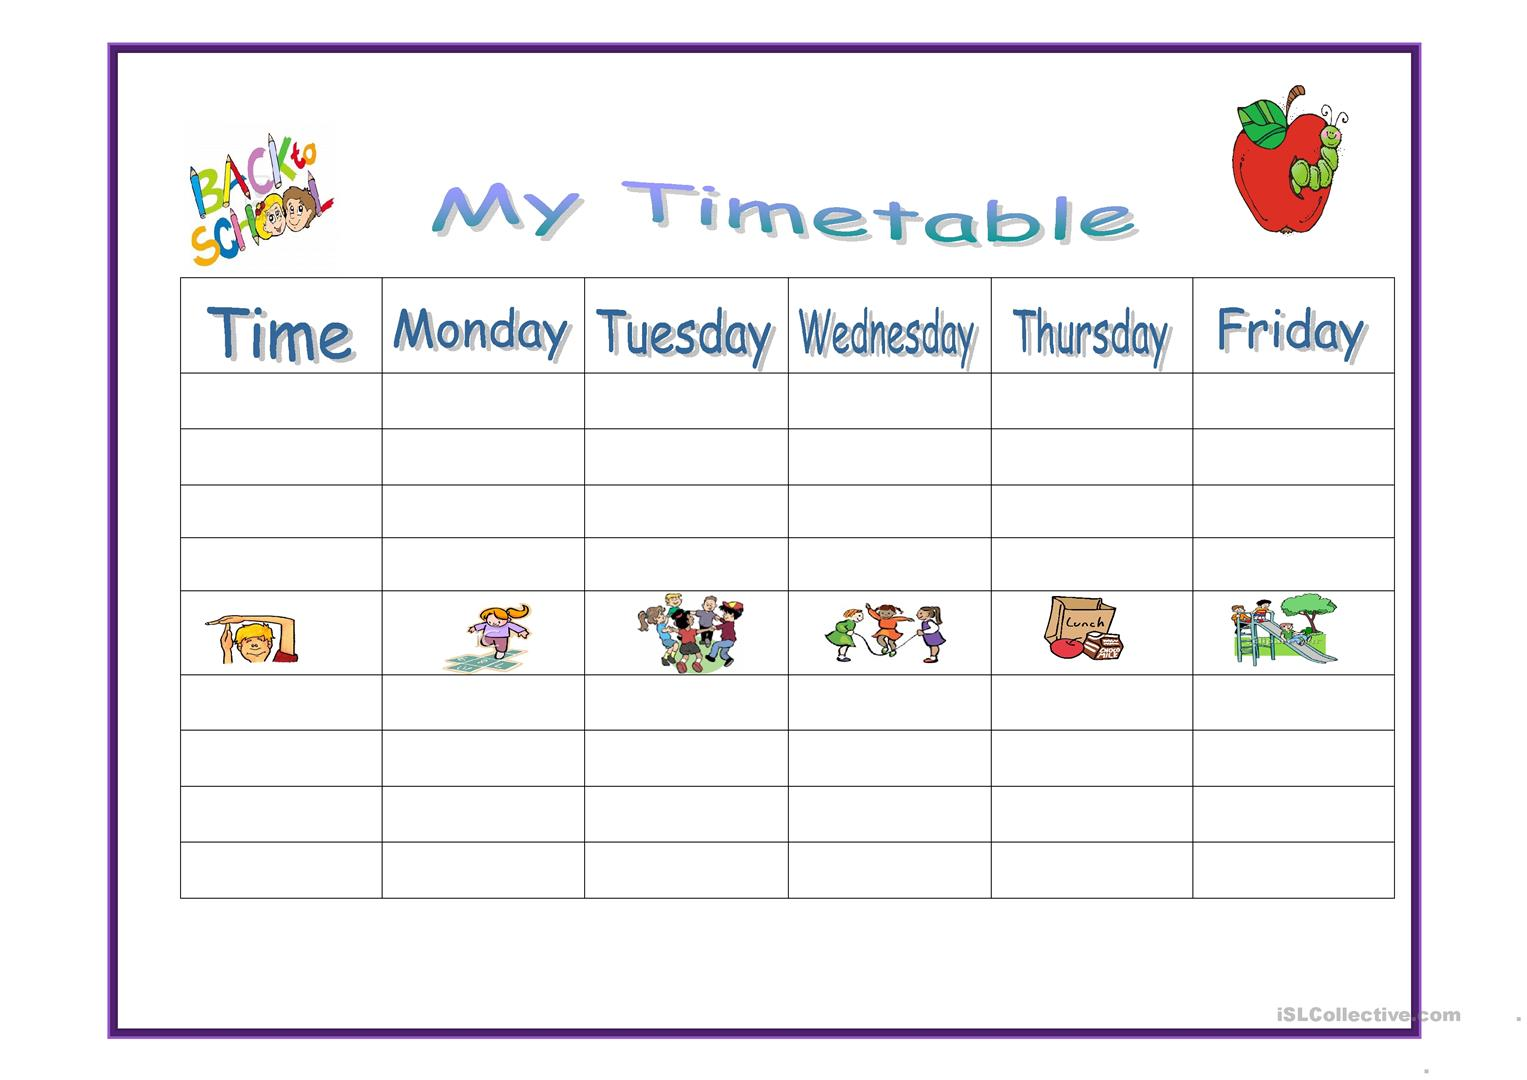 My Timetable Worksheet